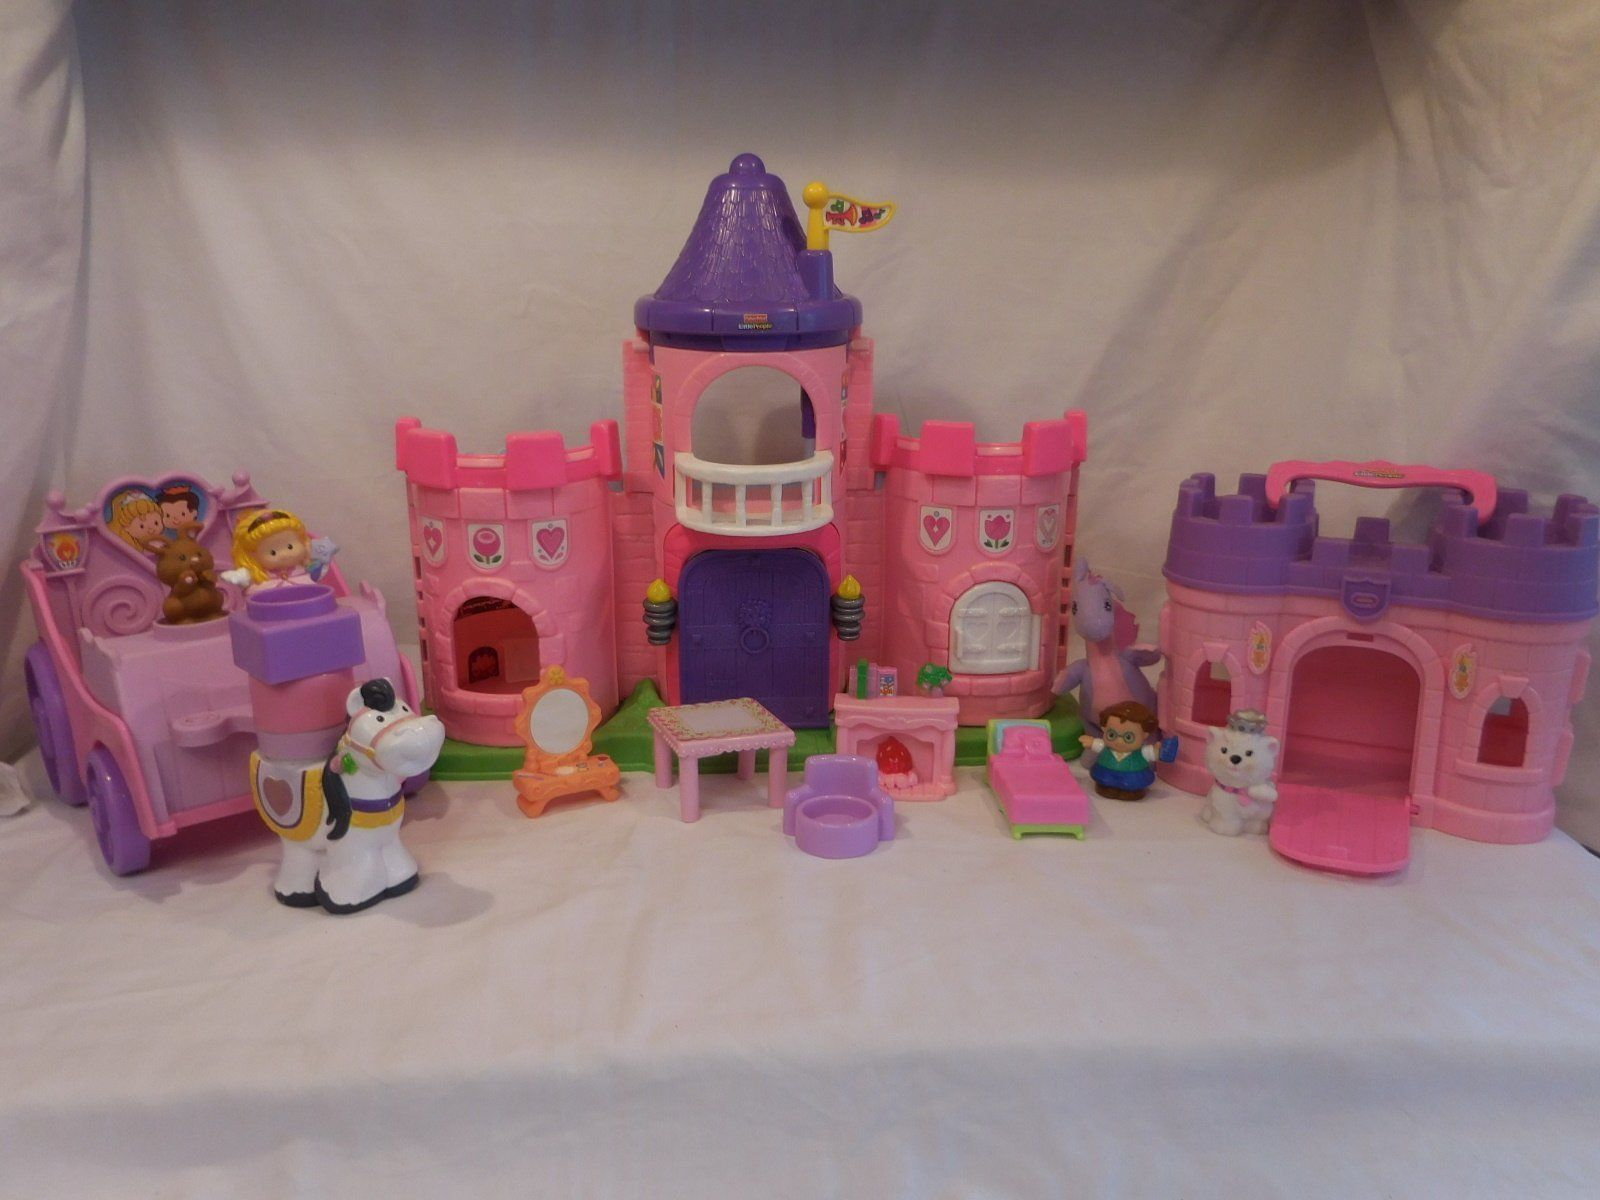 Fisher Price Little People Pink Castle + Play 'N Go Castle + Princess Carriage